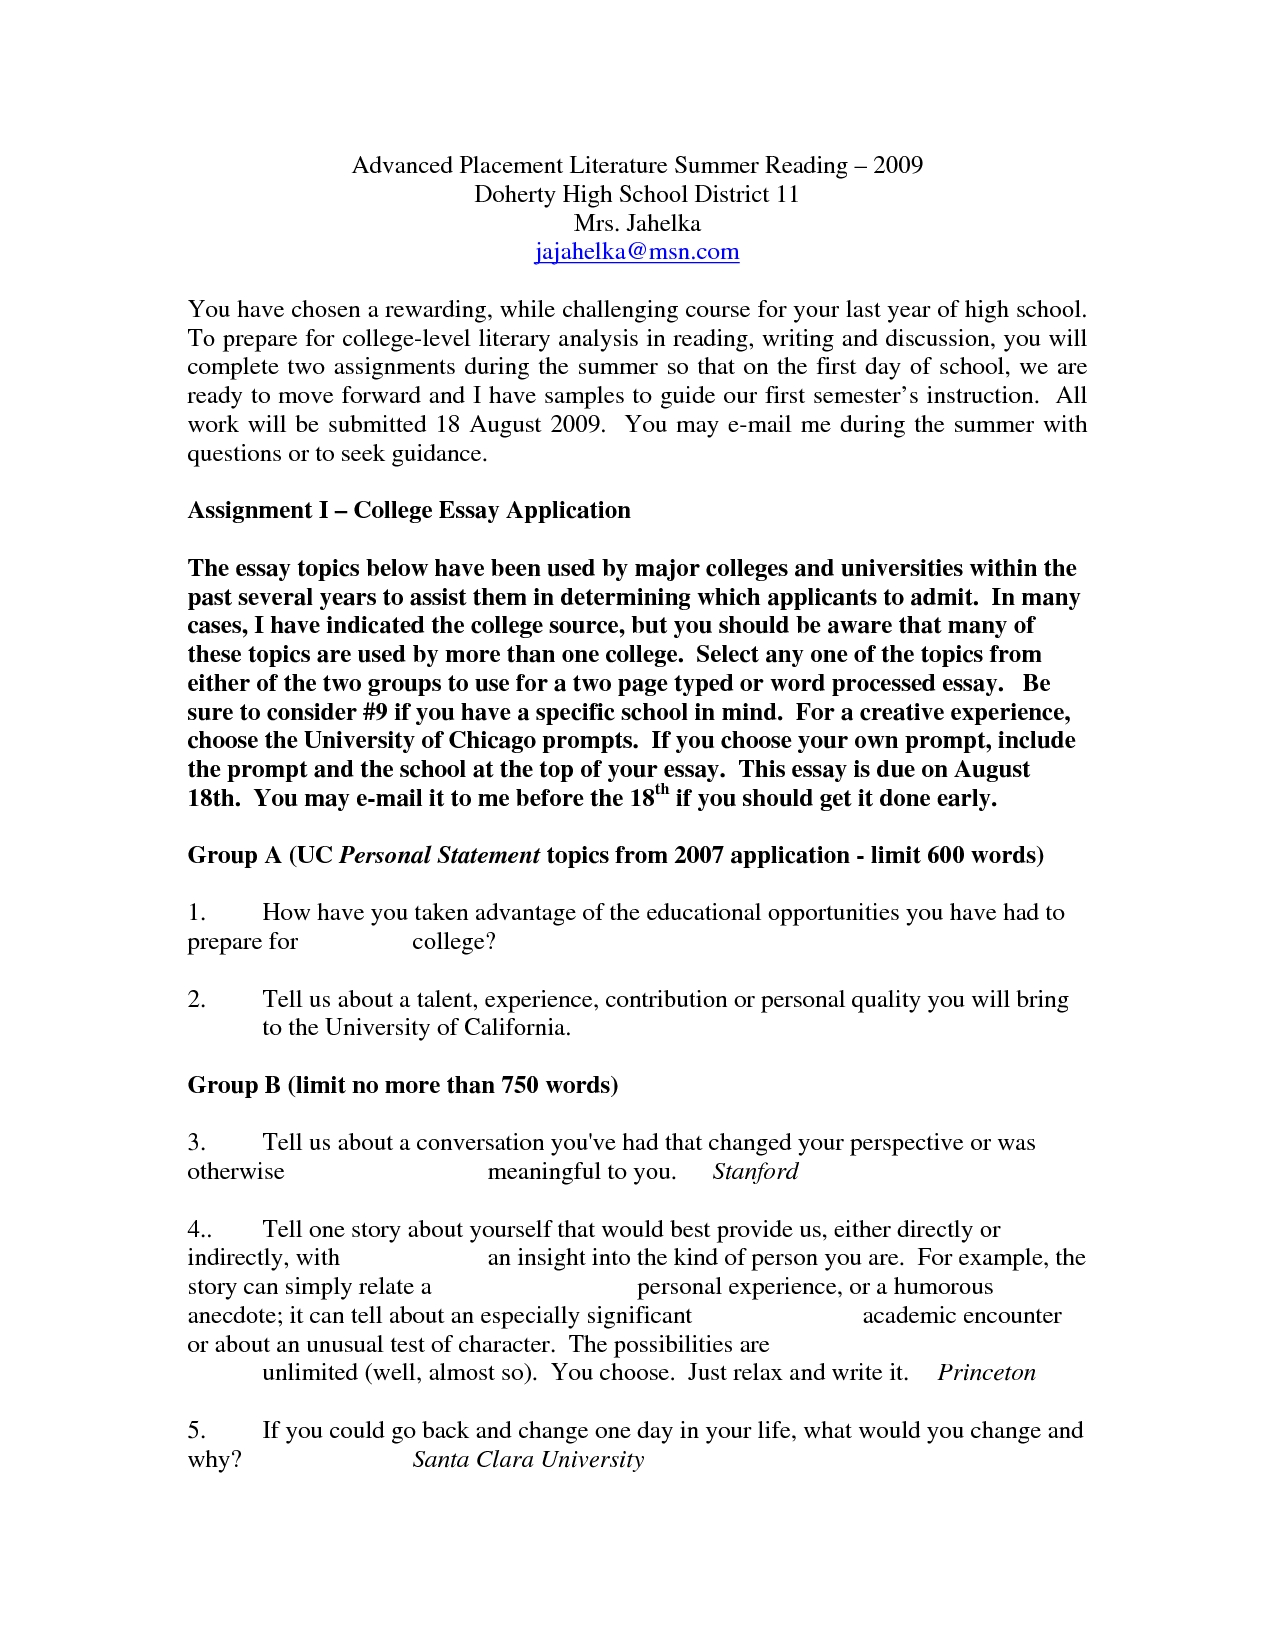 020 Ideas Of How To Write Good College Admissions Essay Admission With Best Humorous Essays For Middle School Conclusion An Wondrous A Writing Pdf Full